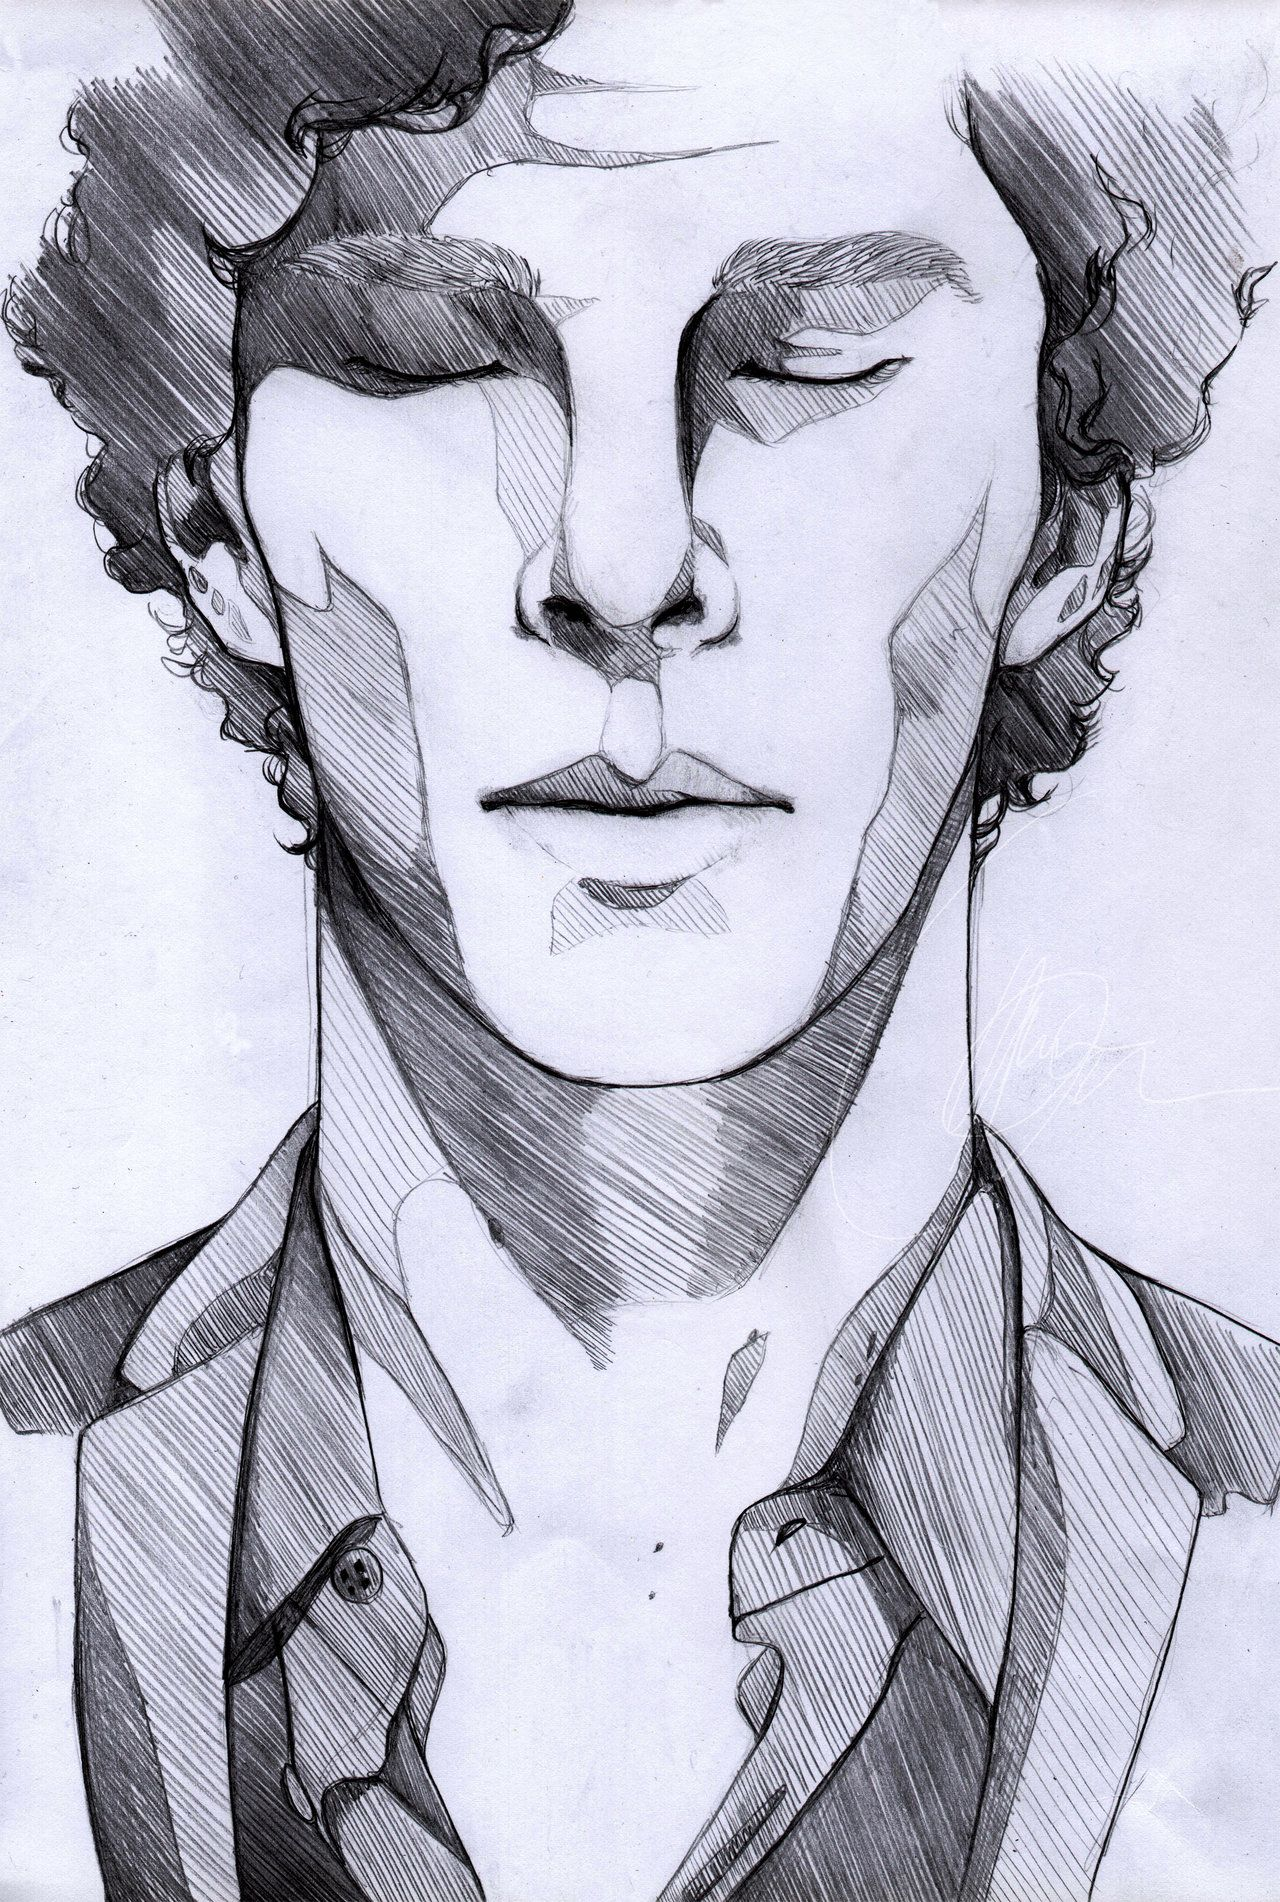 The lonely - Sherlock by Mi-caw-ber.deviantart.com on @deviantART (3 june 2014) //i love this style of shading